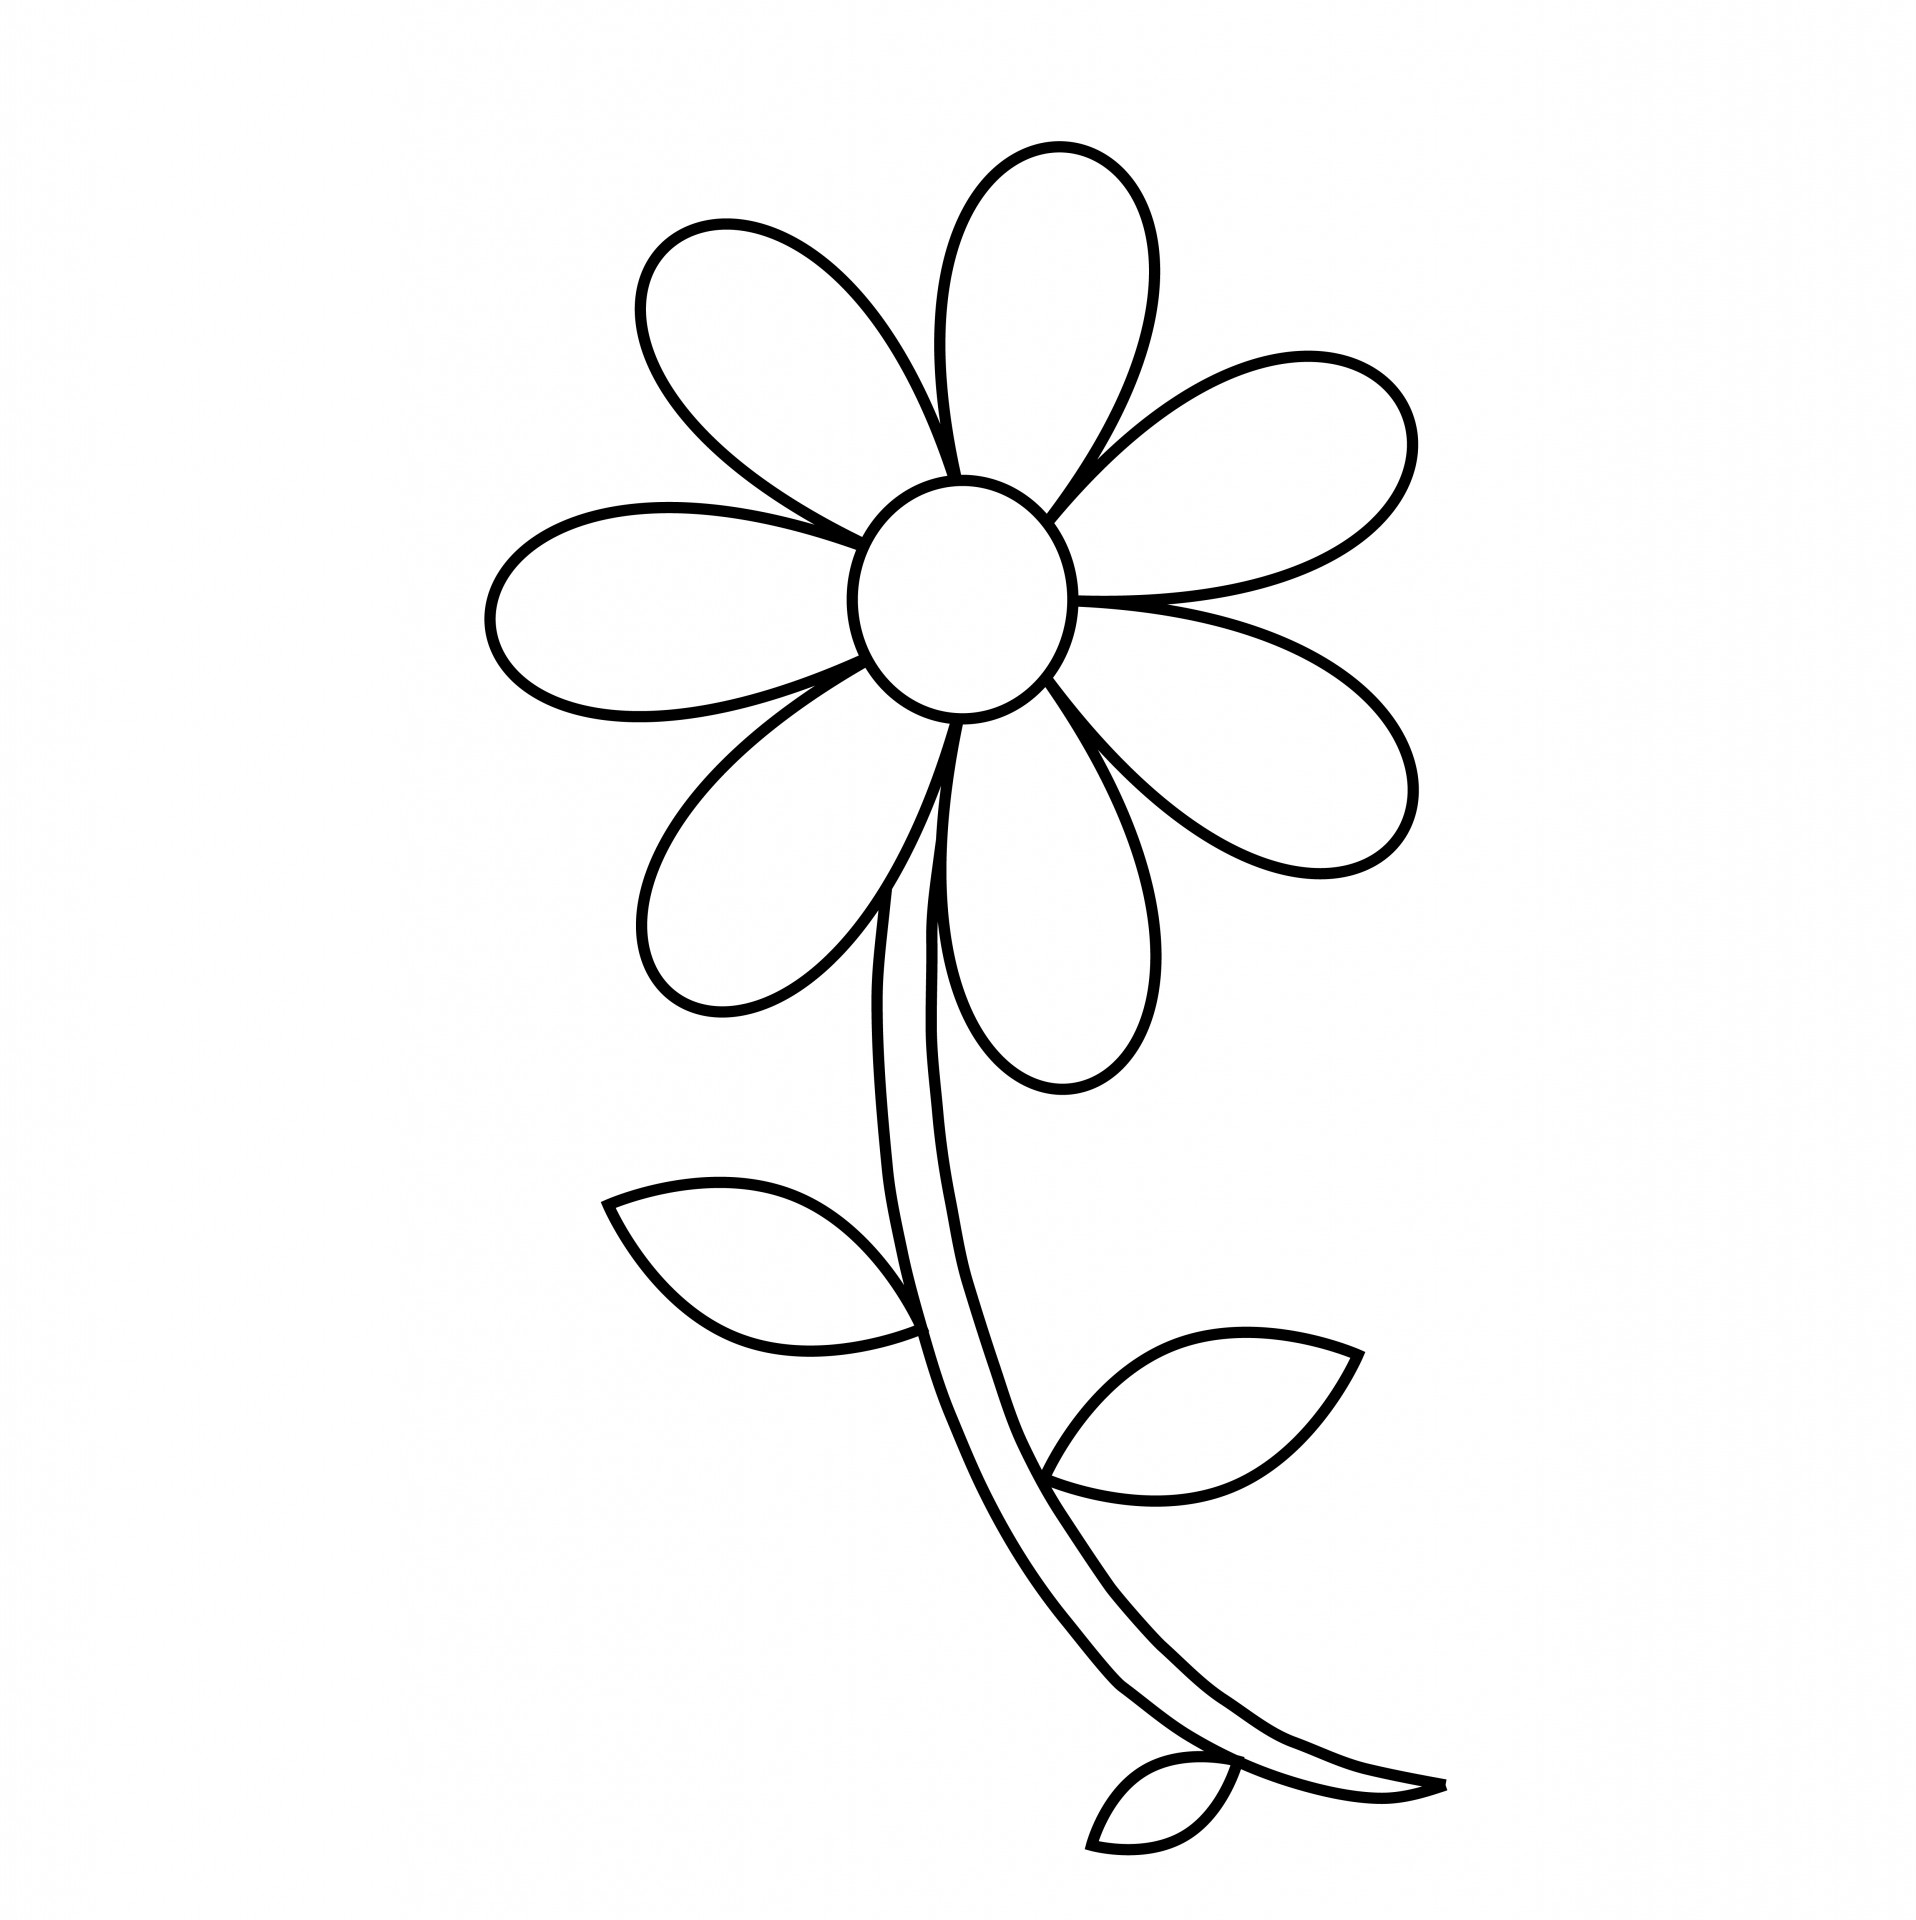 Black and white flower outline free download best black and white 1916x1920 flower outline coloring page free stock photo mightylinksfo